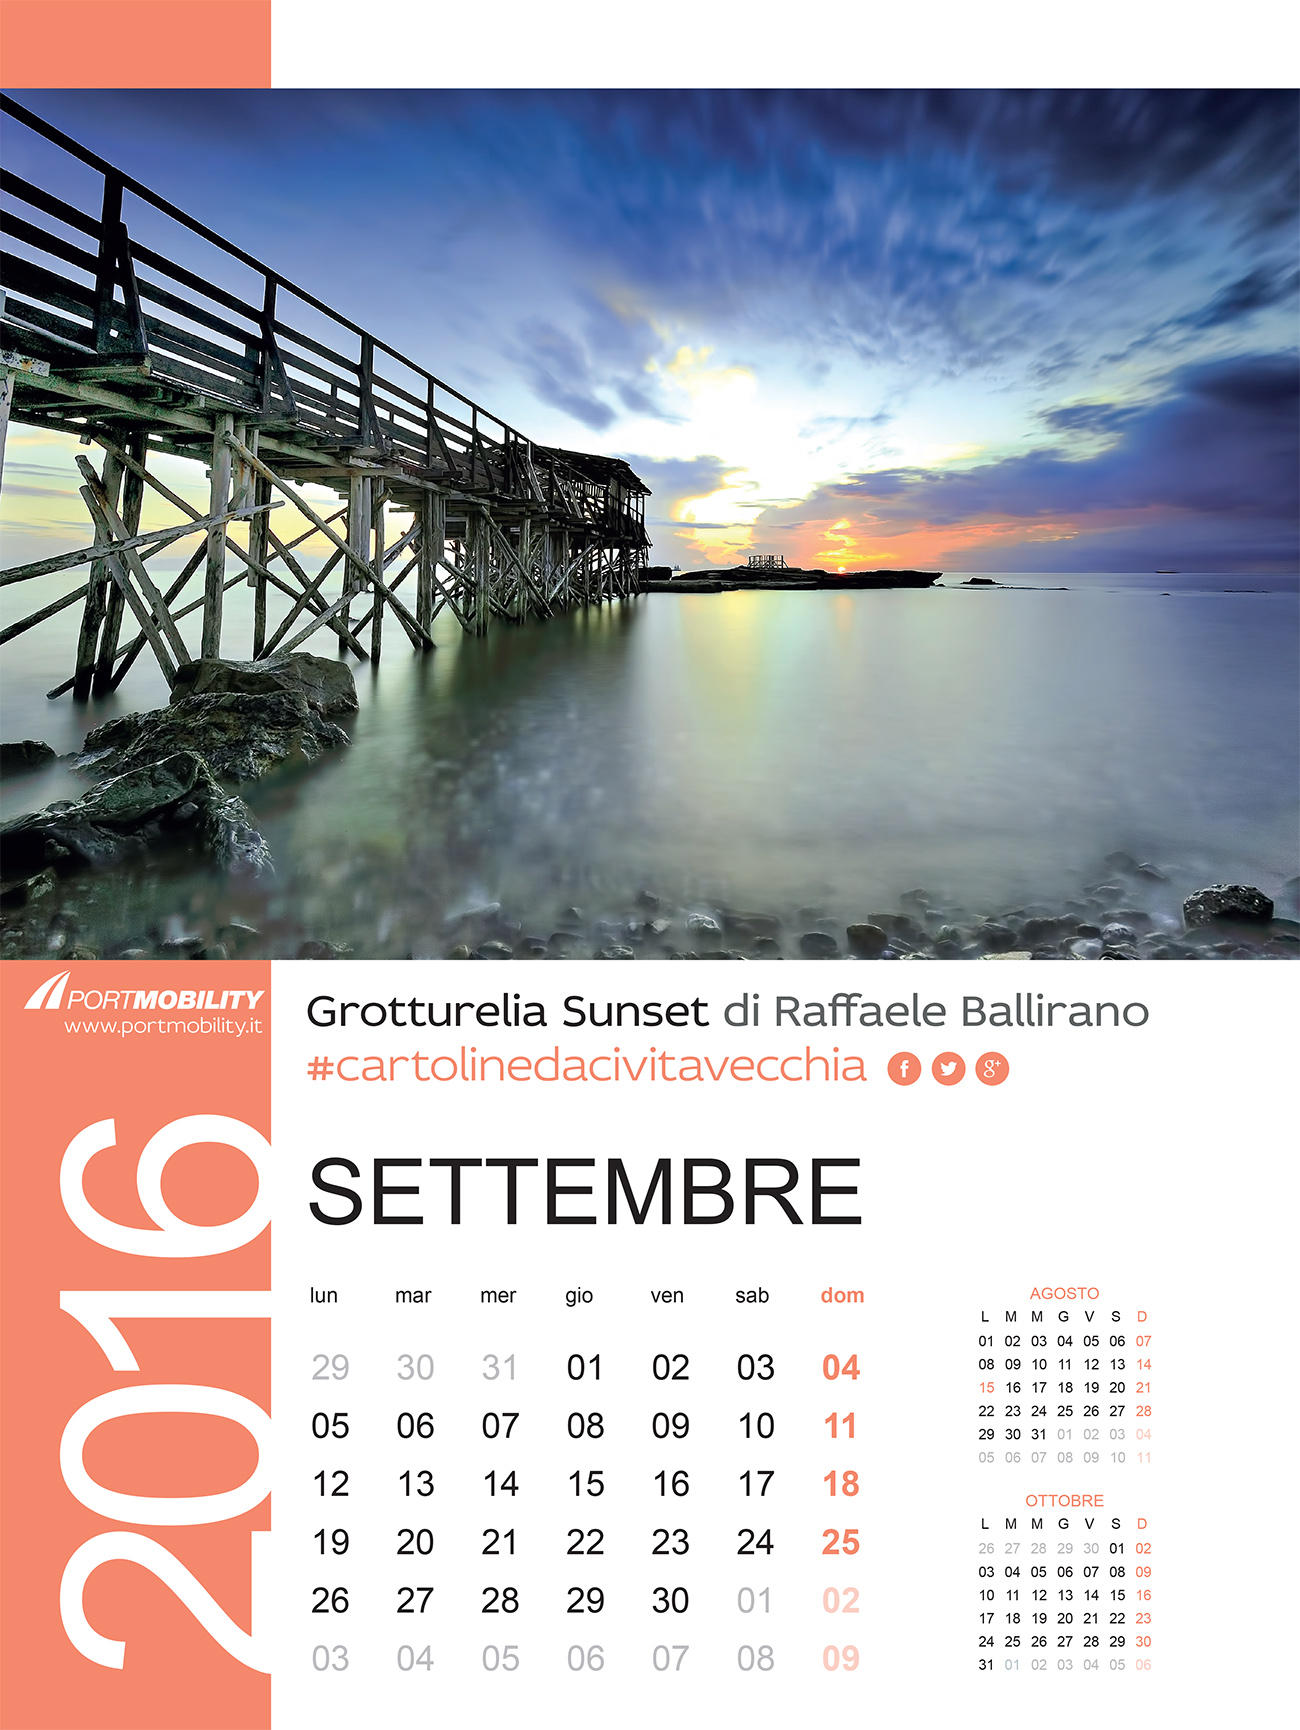 Postcards from Civitavecchia: September 2016